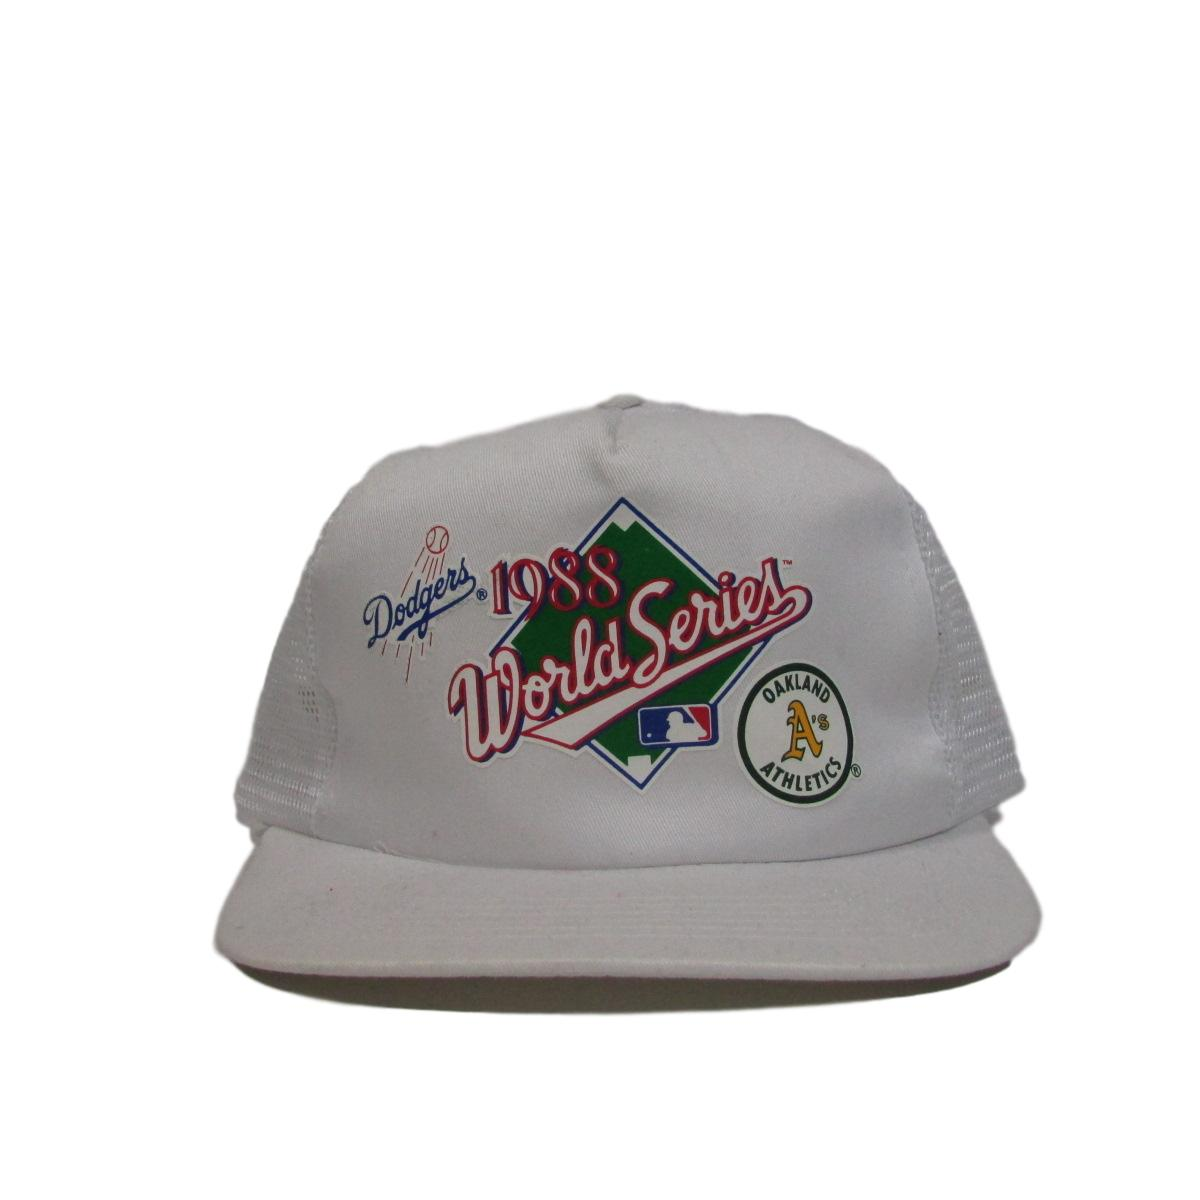 Los Angeles Dodgers & Oakland Athletics 1988 World Series Deadstock Trucker Snapback Hat